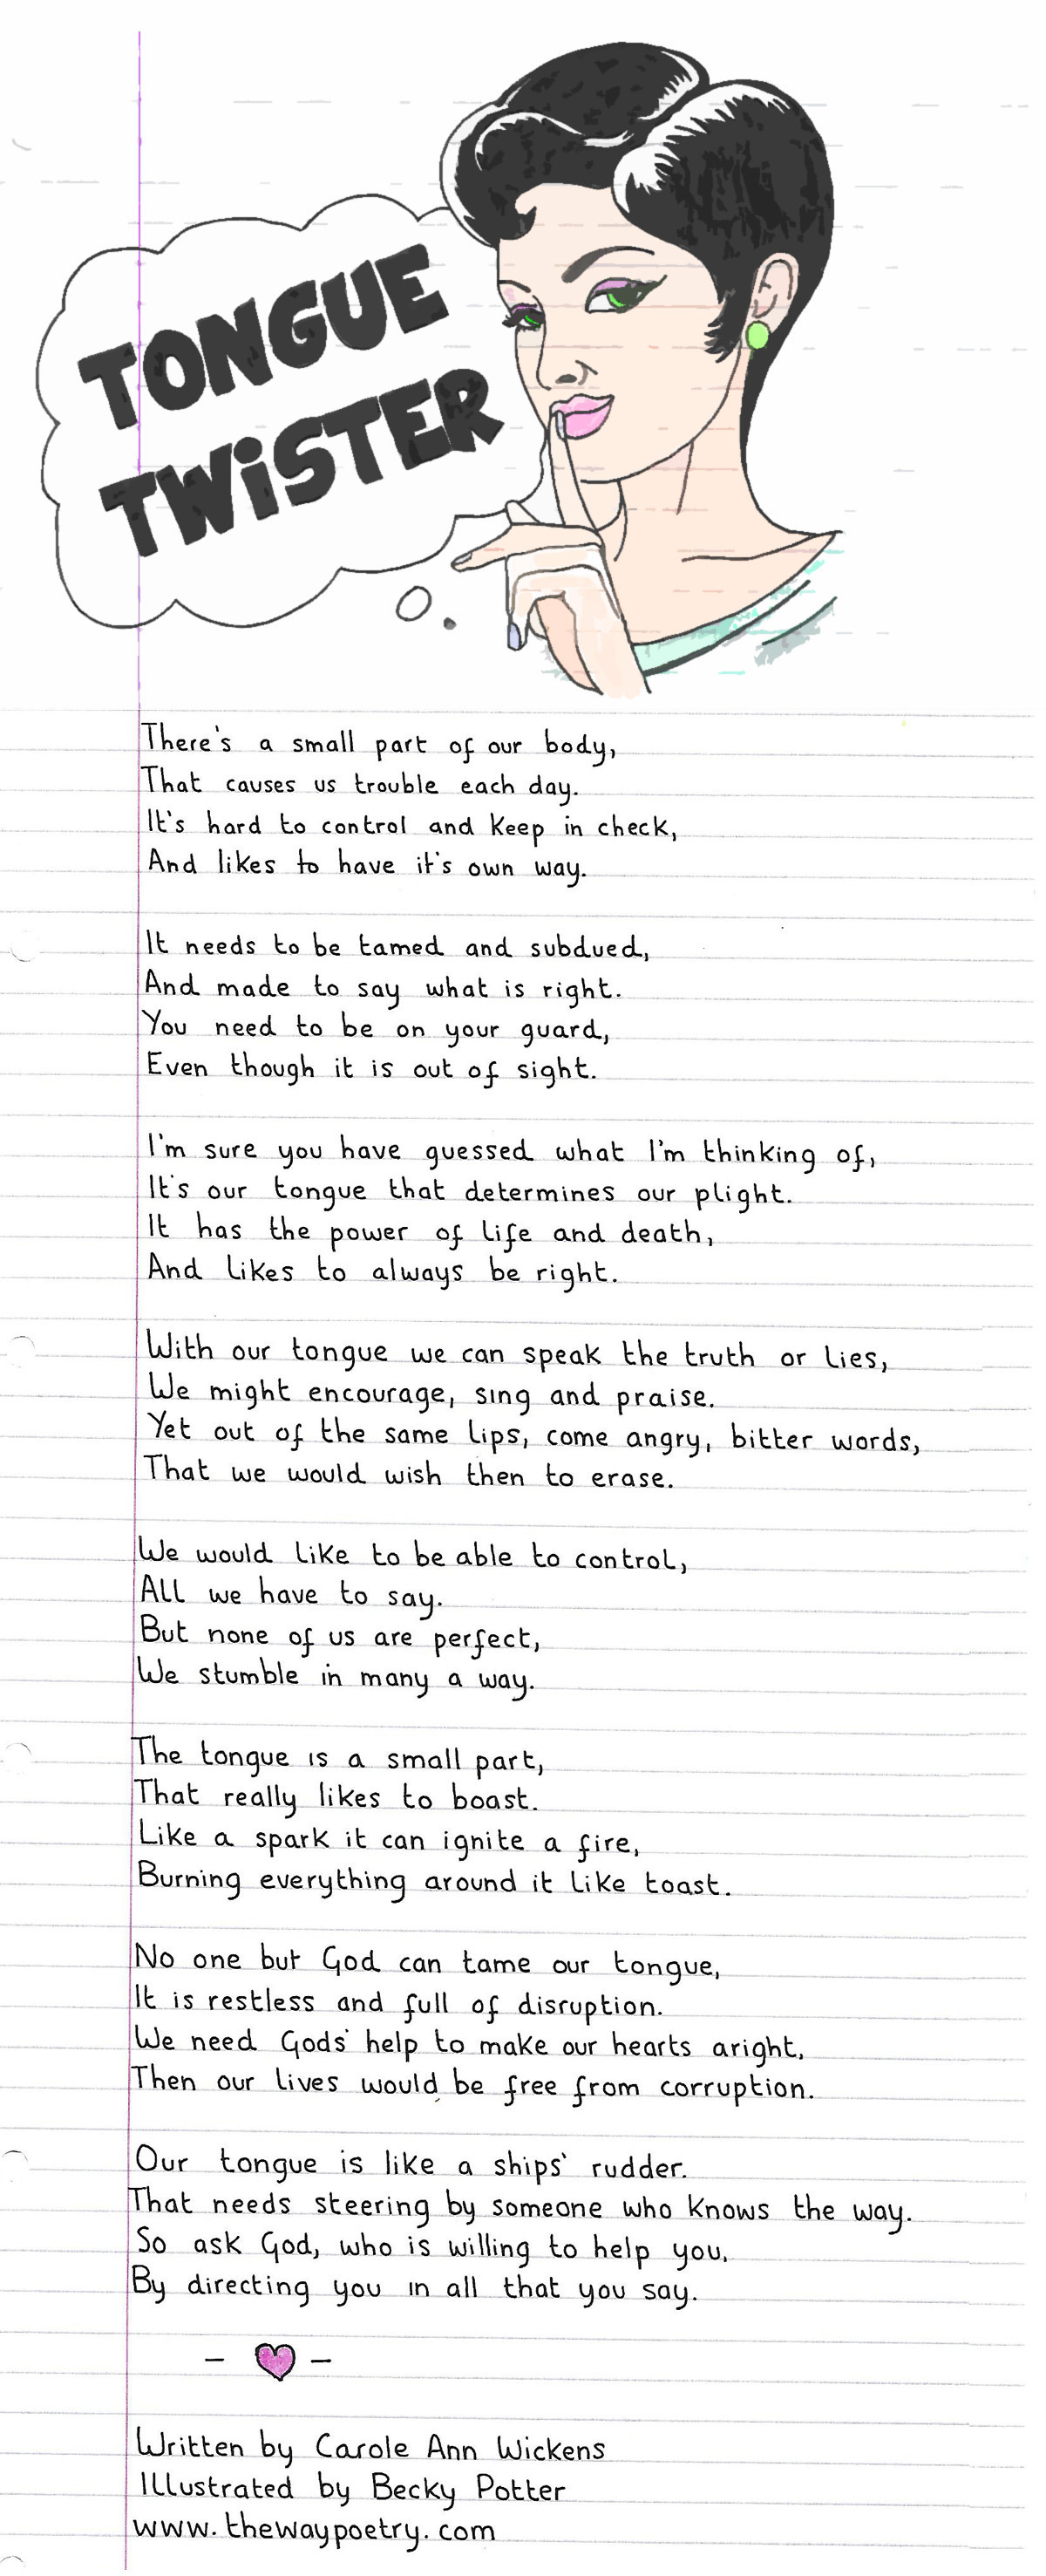 Tongue Twister by Carole Ann Wickens